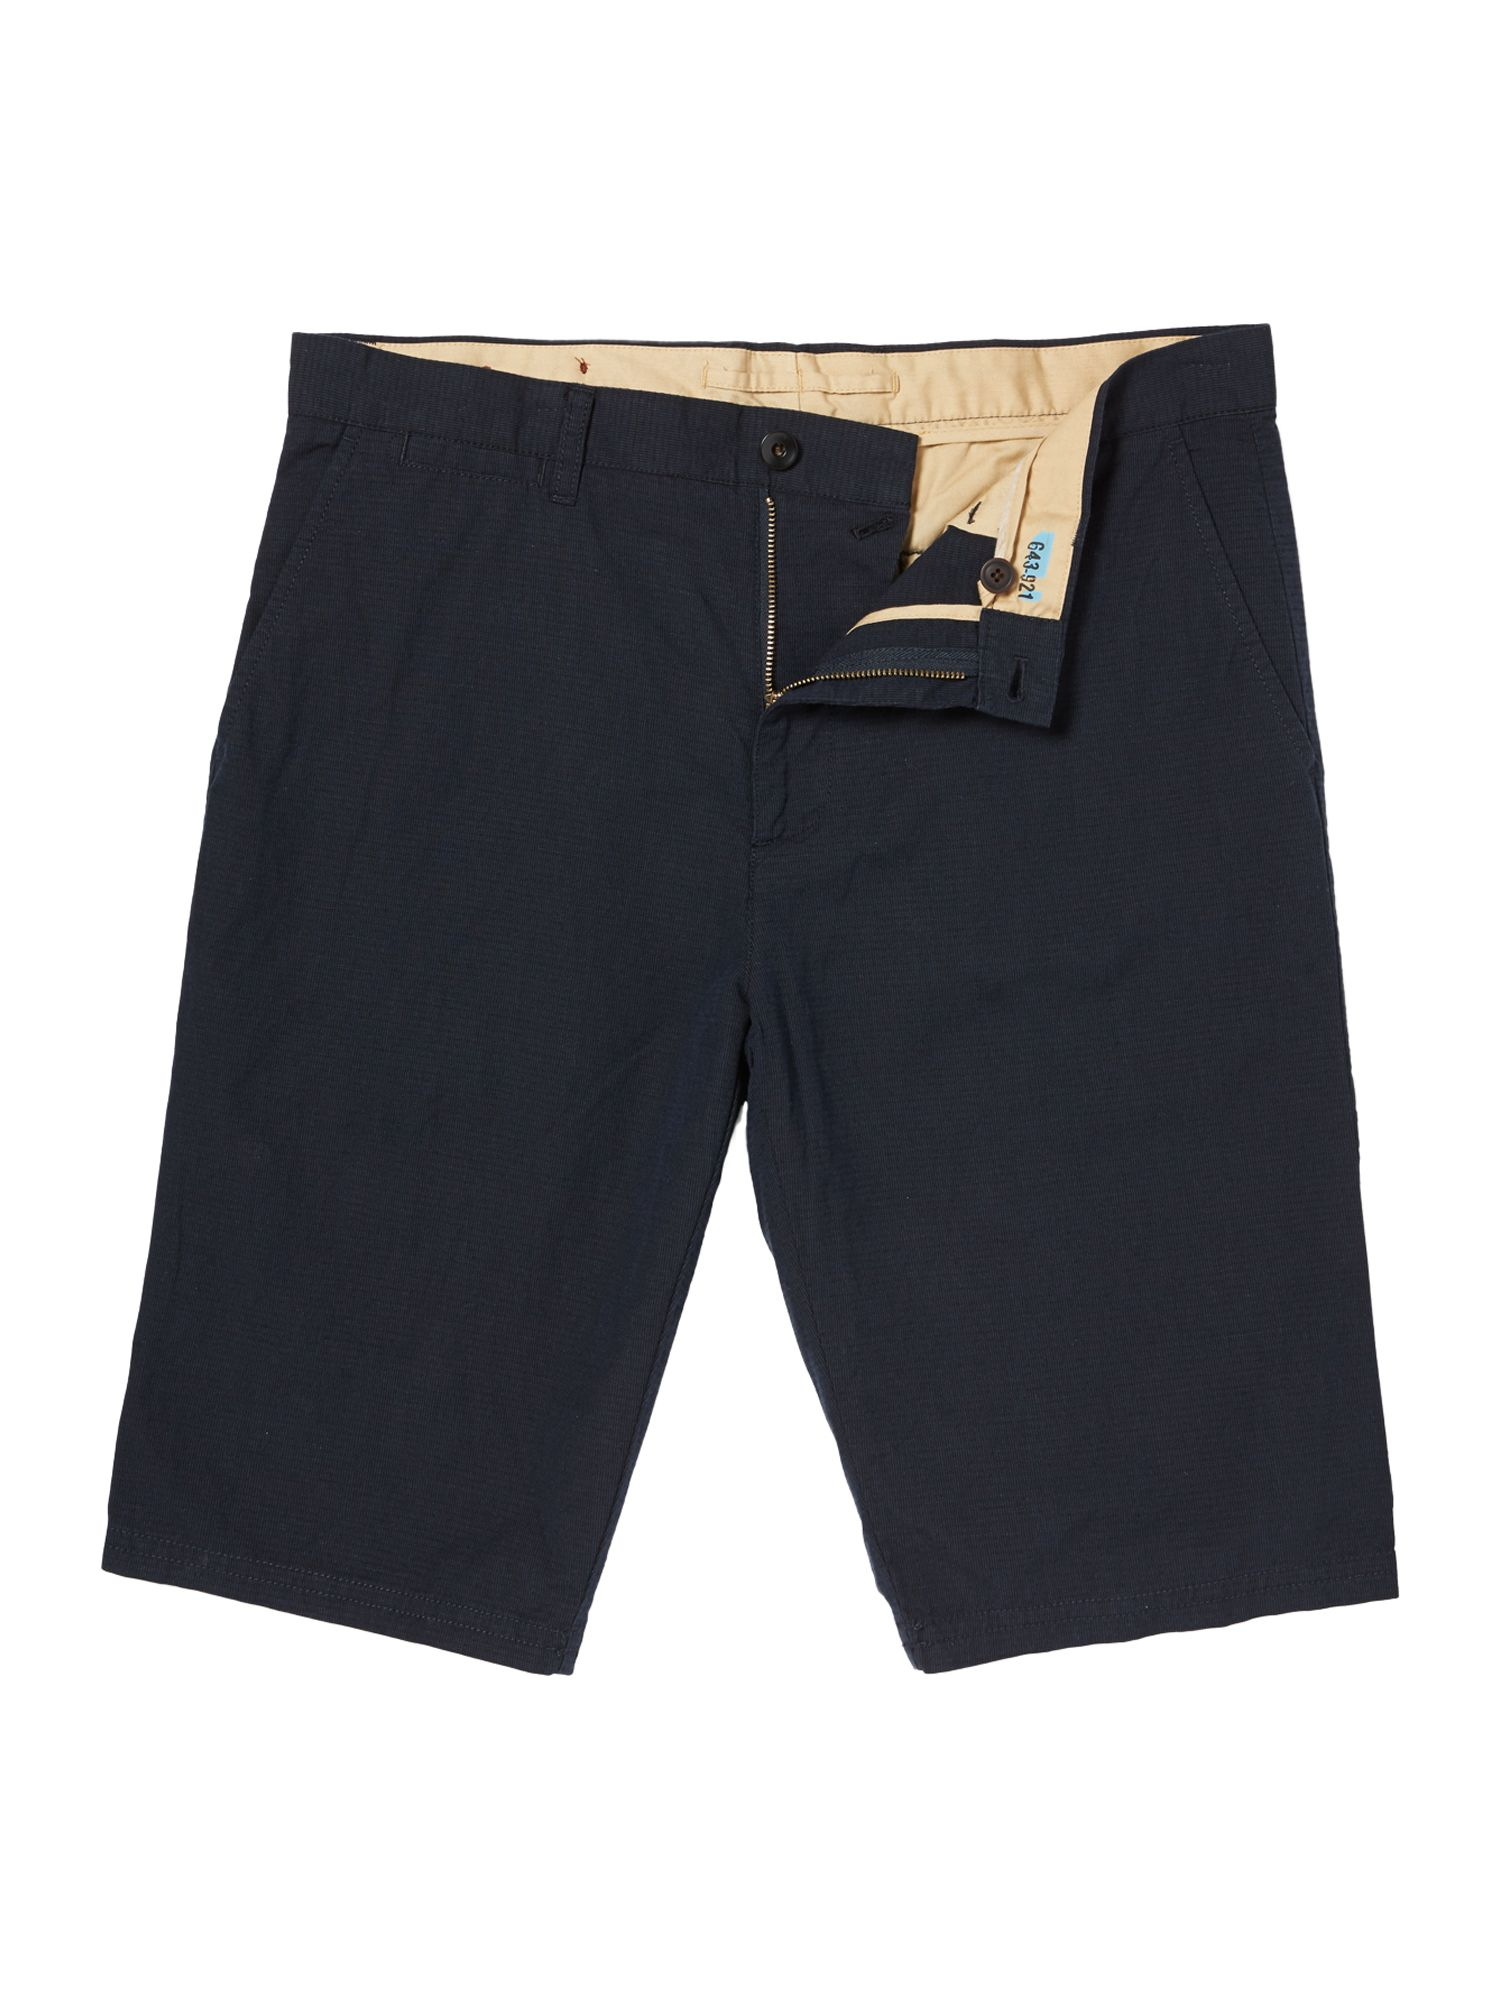 seer textured shorts